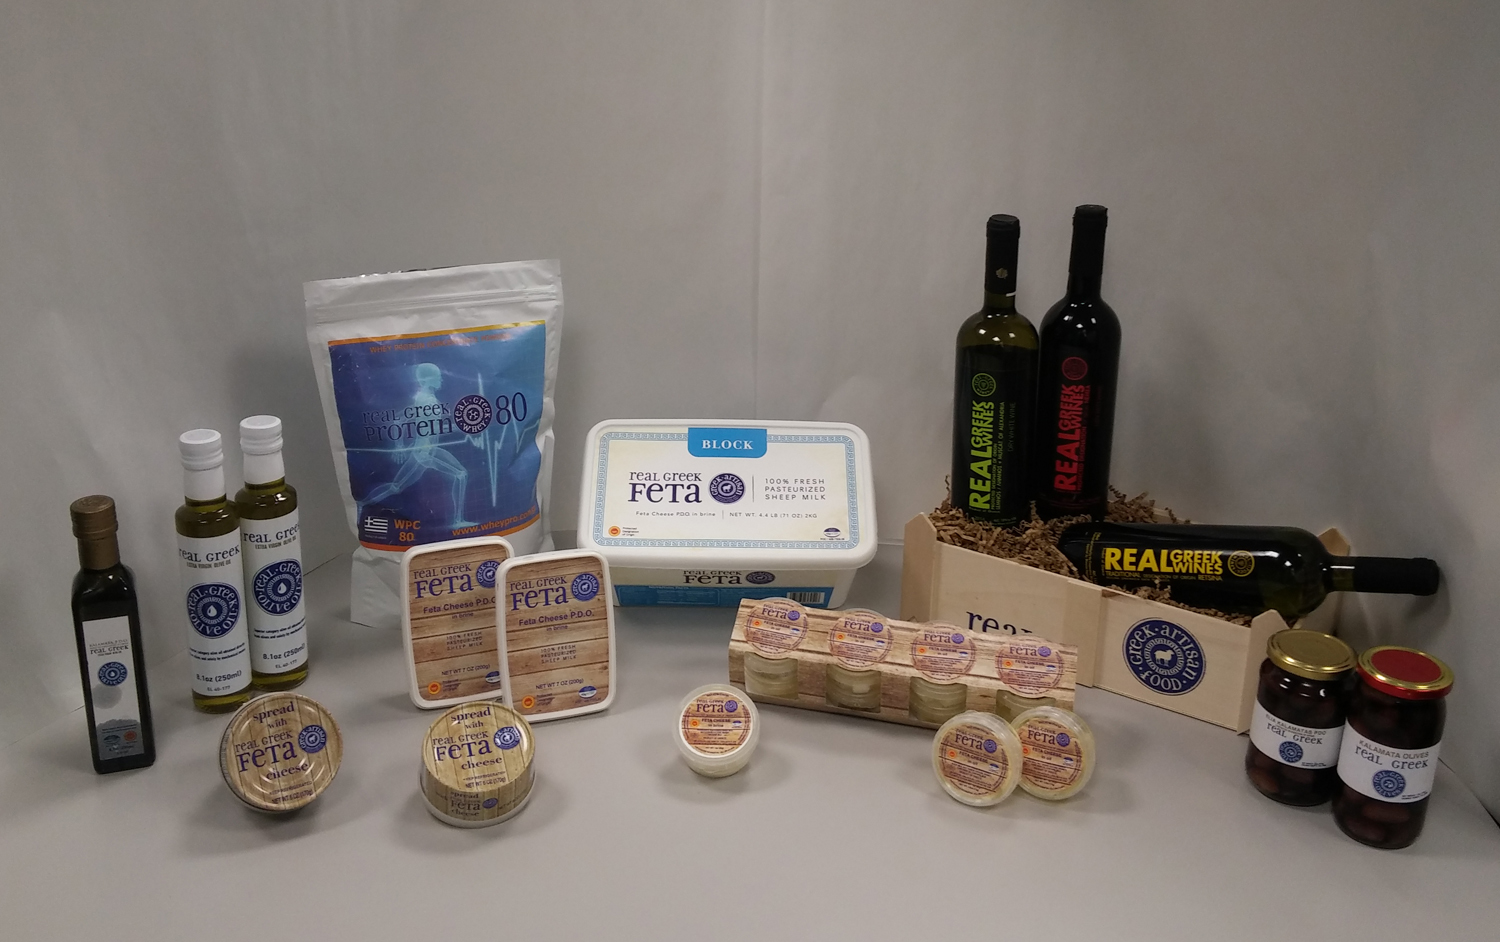 Real Greek Products